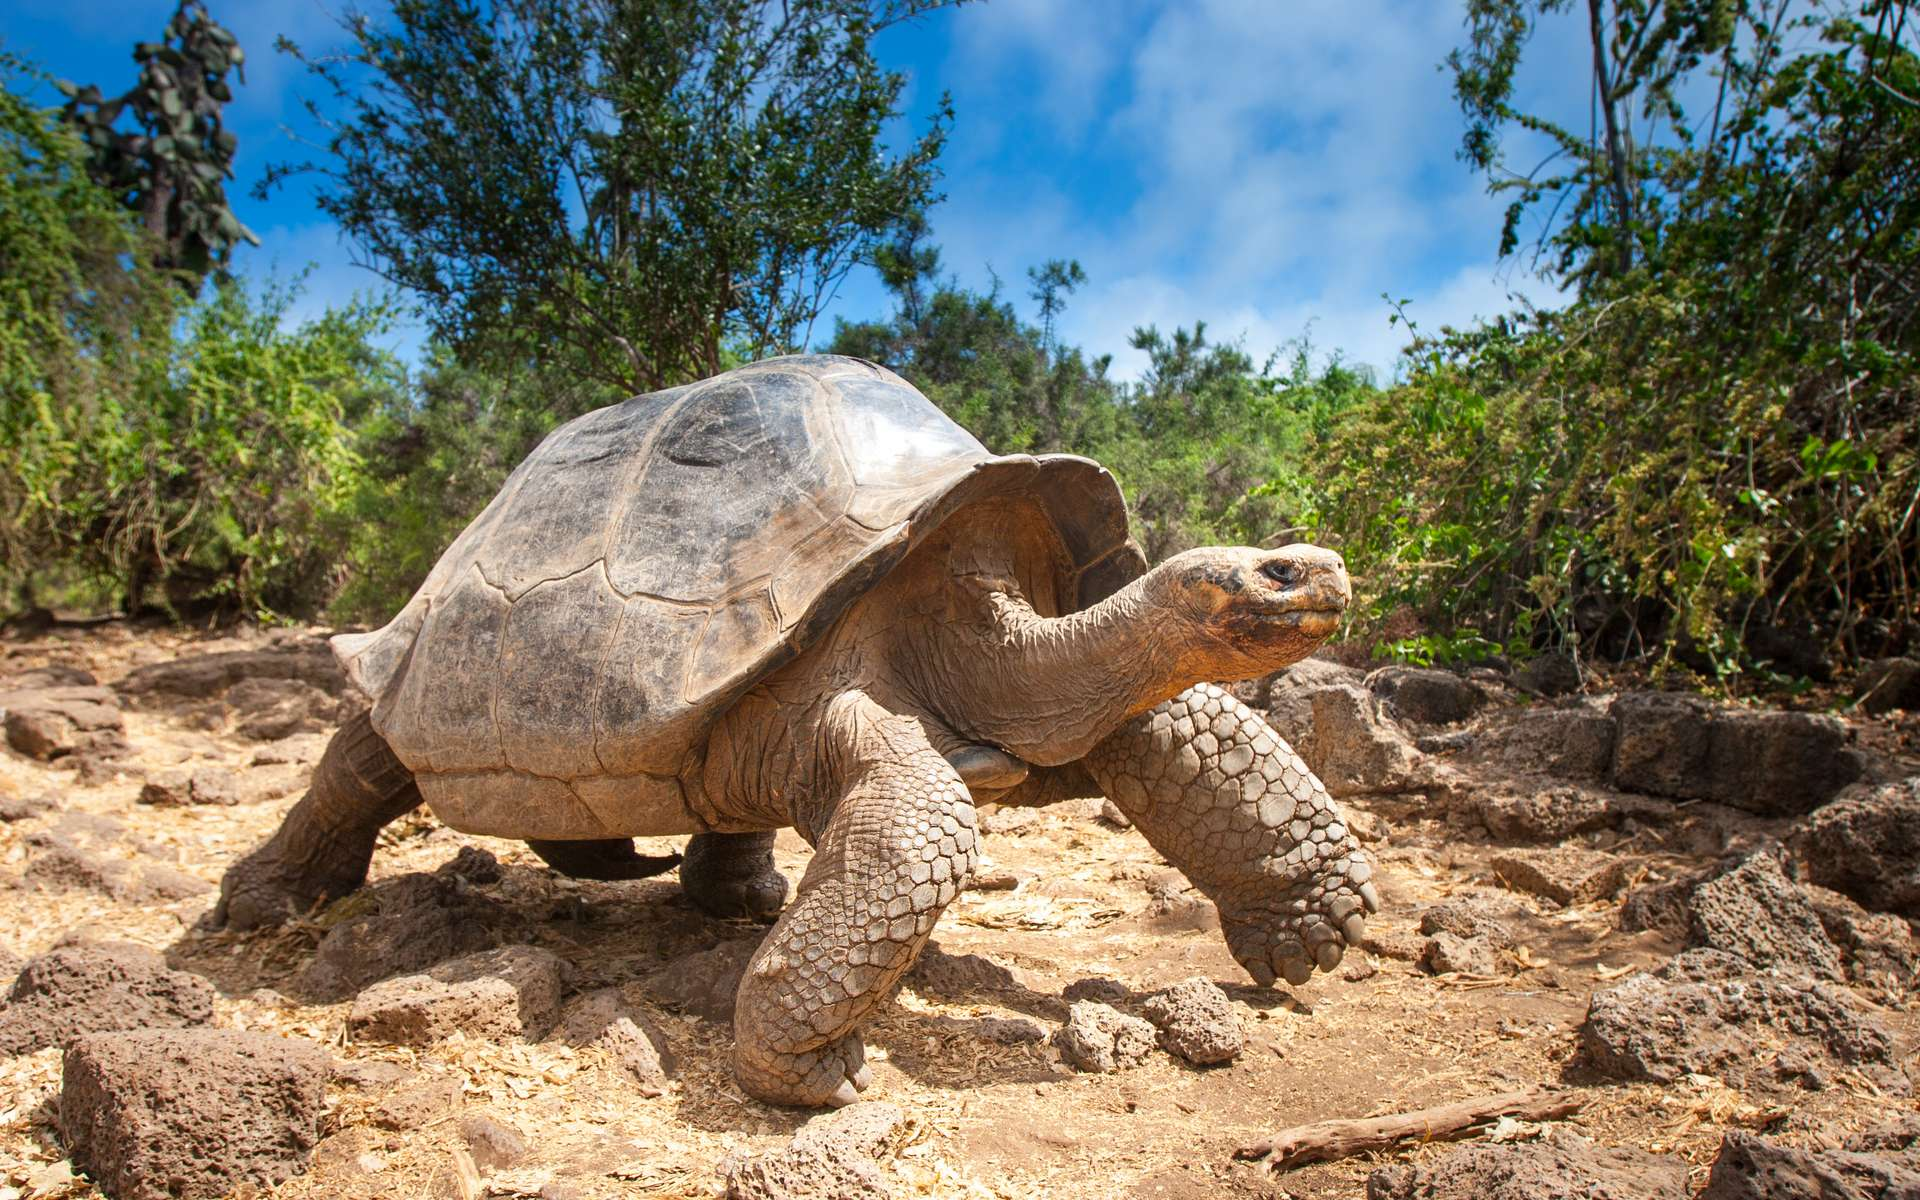 Tortue ivoire aux Galapagos. © Grispb, Adobe Stock